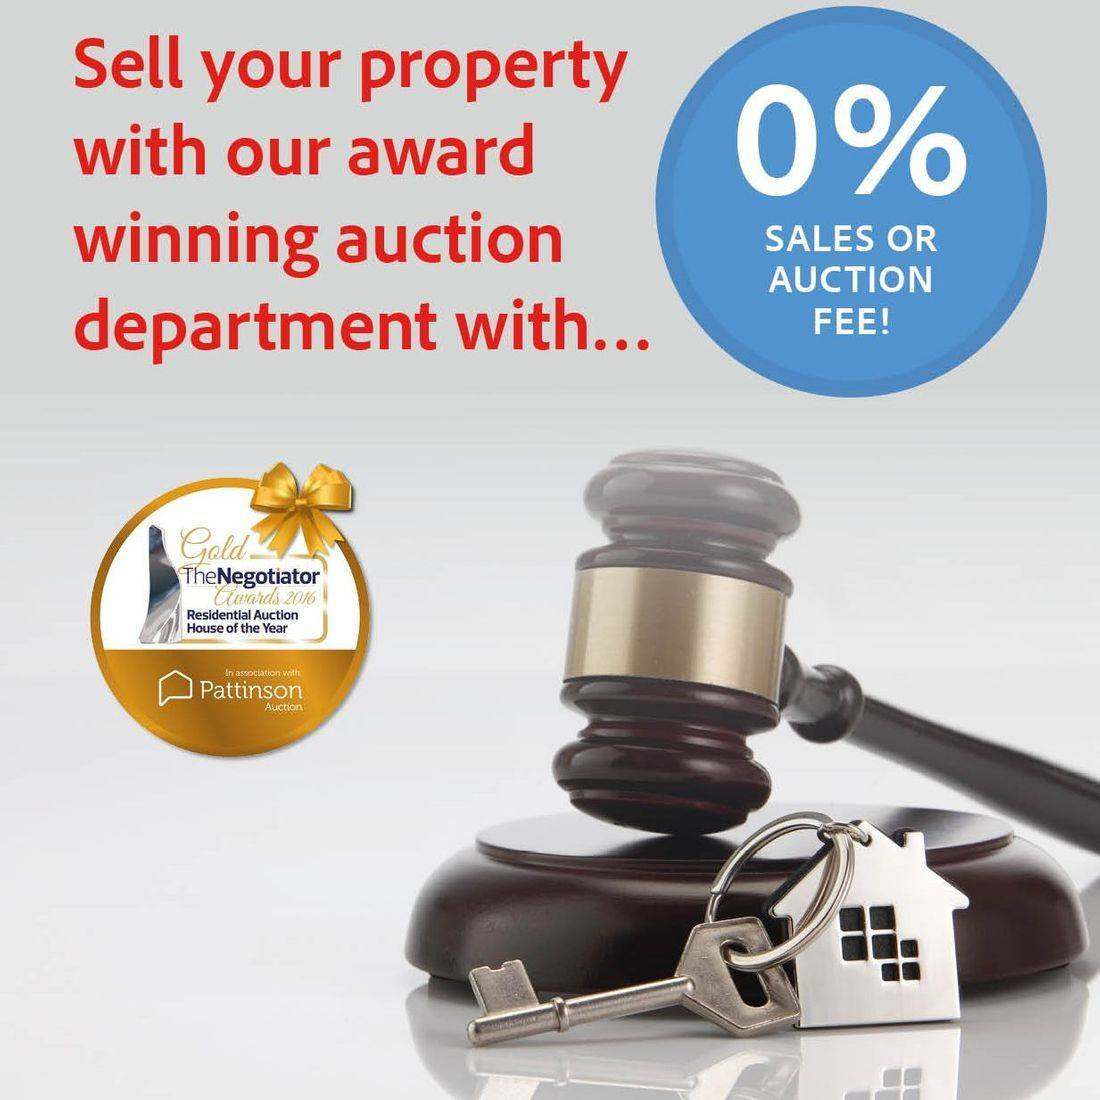 Sell through auctions, auctions, property auctions